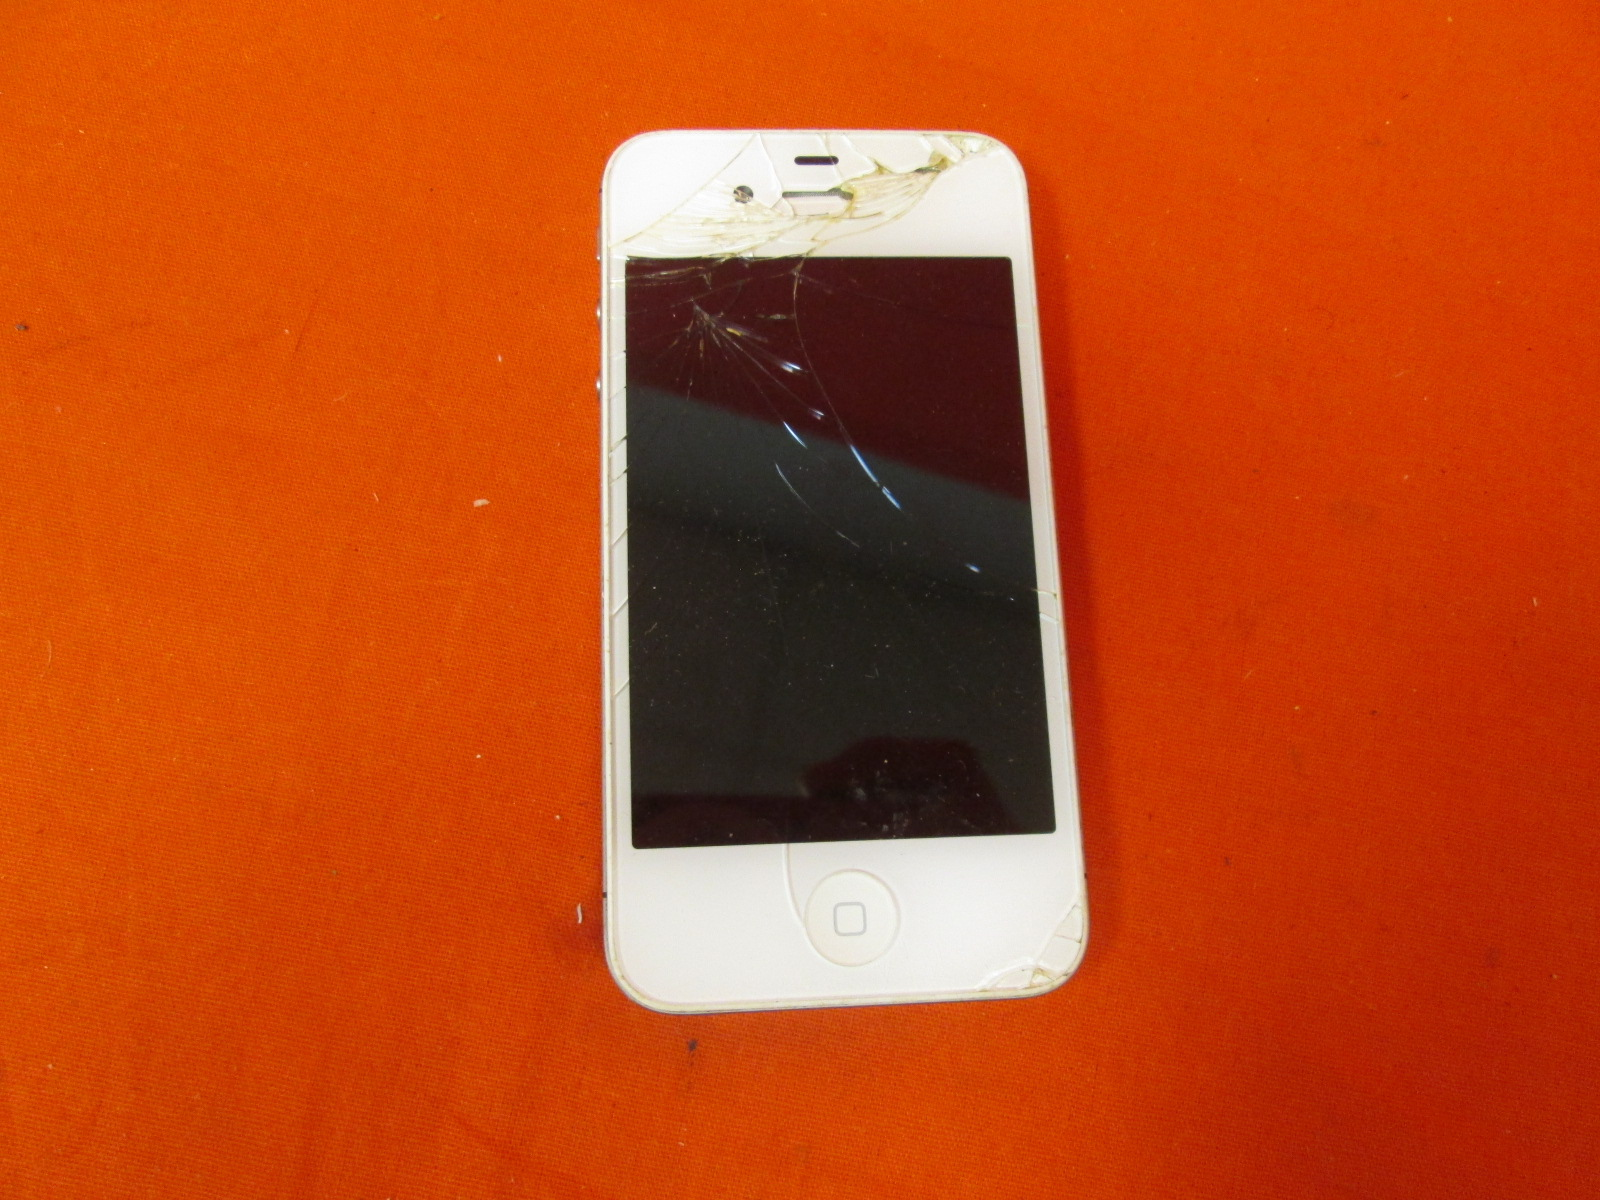 Broken Apple iPhone 4 A1332 16GB White GSM Locked